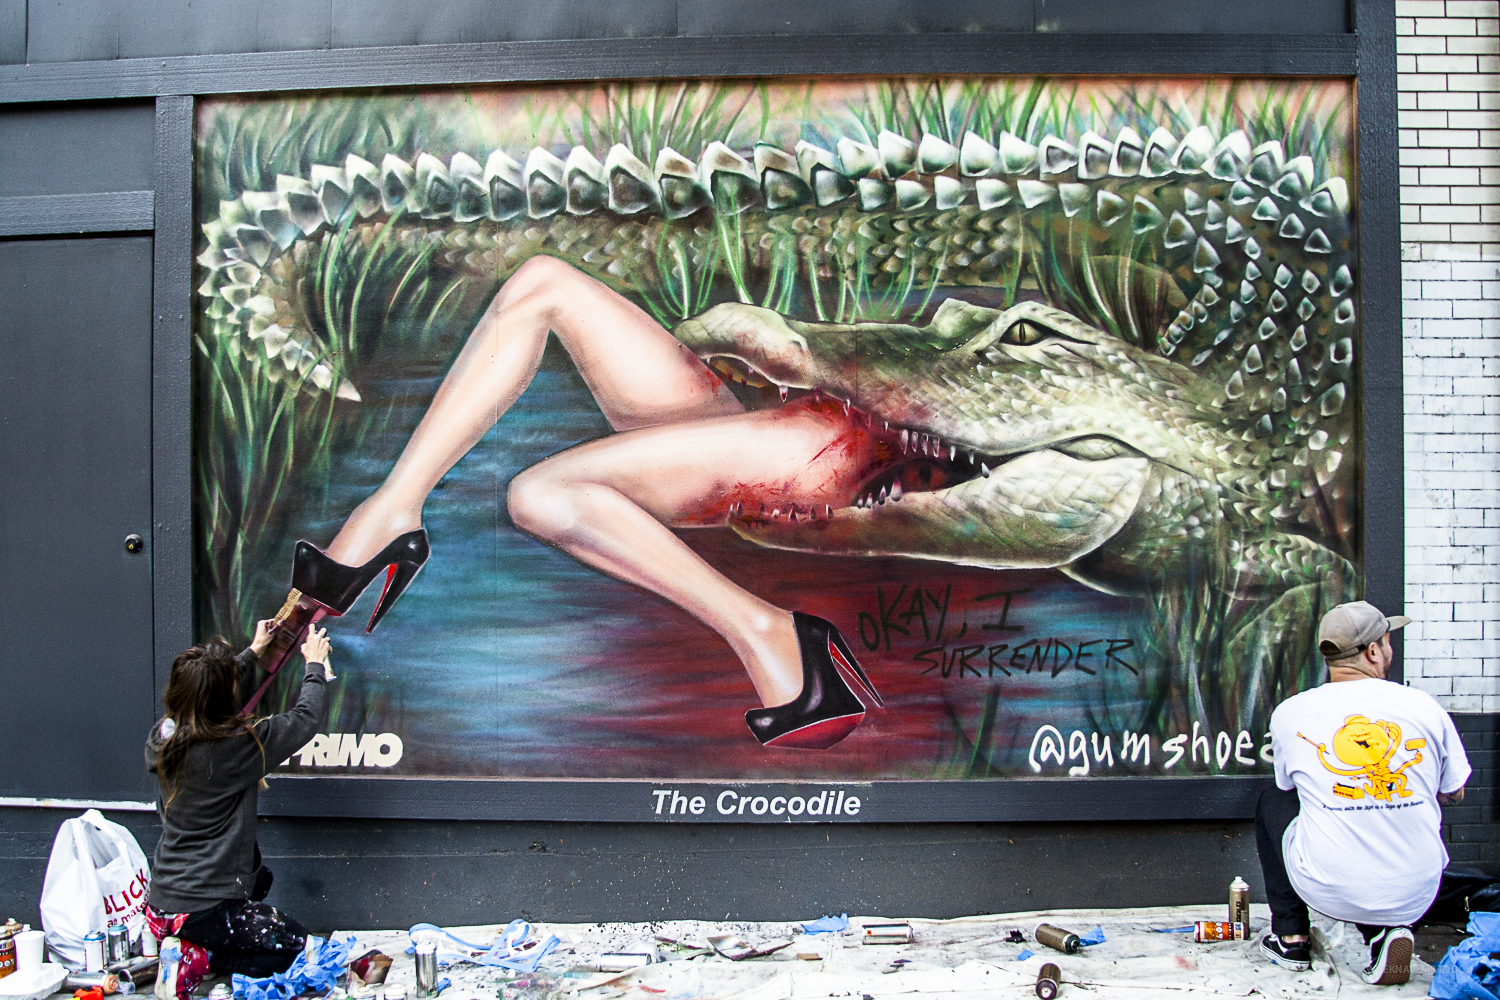 WISEKNAVE documentation for fine artist, Angela China 'GUMSHOE'. In Seattle while painting the mural 'Okay, I Surrender' on the Crocodile in Seattle, 2015. Sponsored by Art Primo and Treason Gallery. Gumshoe | WISEKNAVE.ARTDOC©